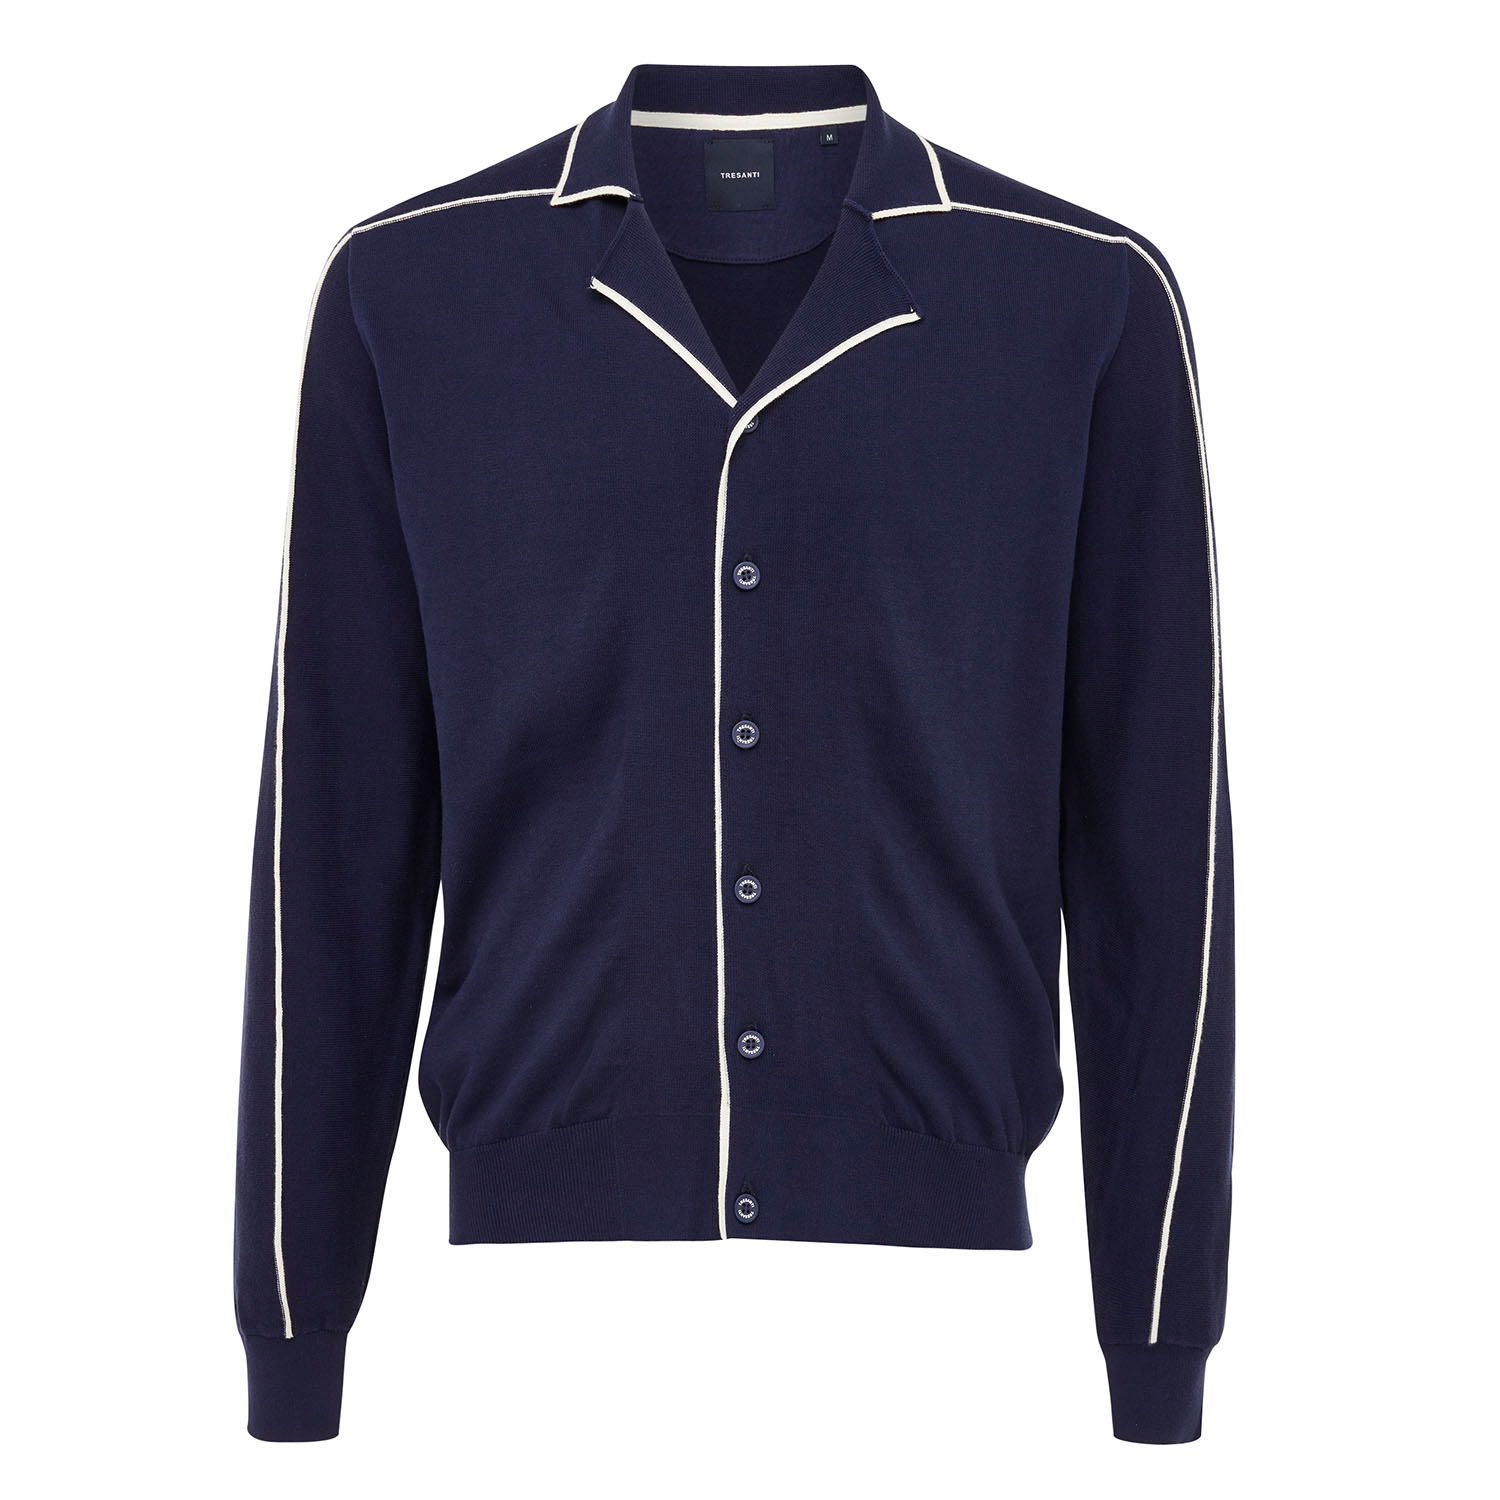 EMIL | Button-through pullover with side stripe relief navy